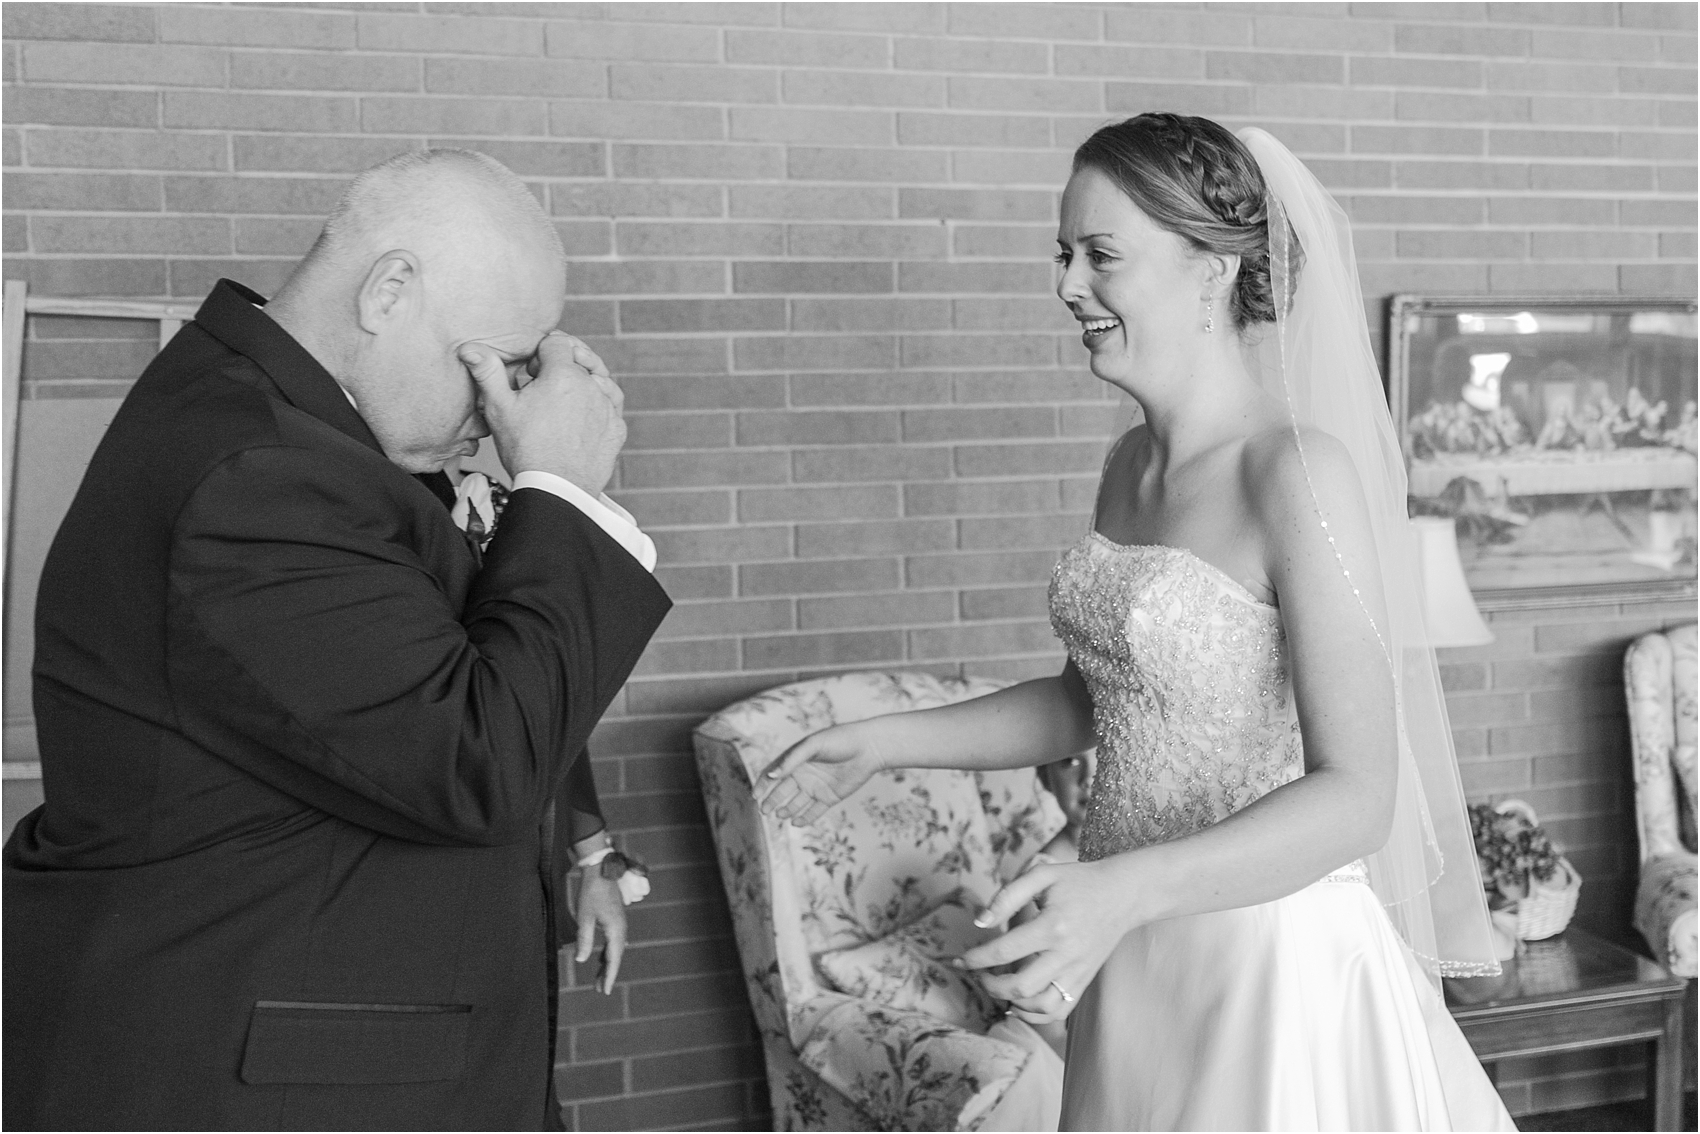 father-and-bride-share-emotional-first-look-on-wedding-day-photos-in-detroit-michigan-by-courtney-carolyn-photography_0081.jpg